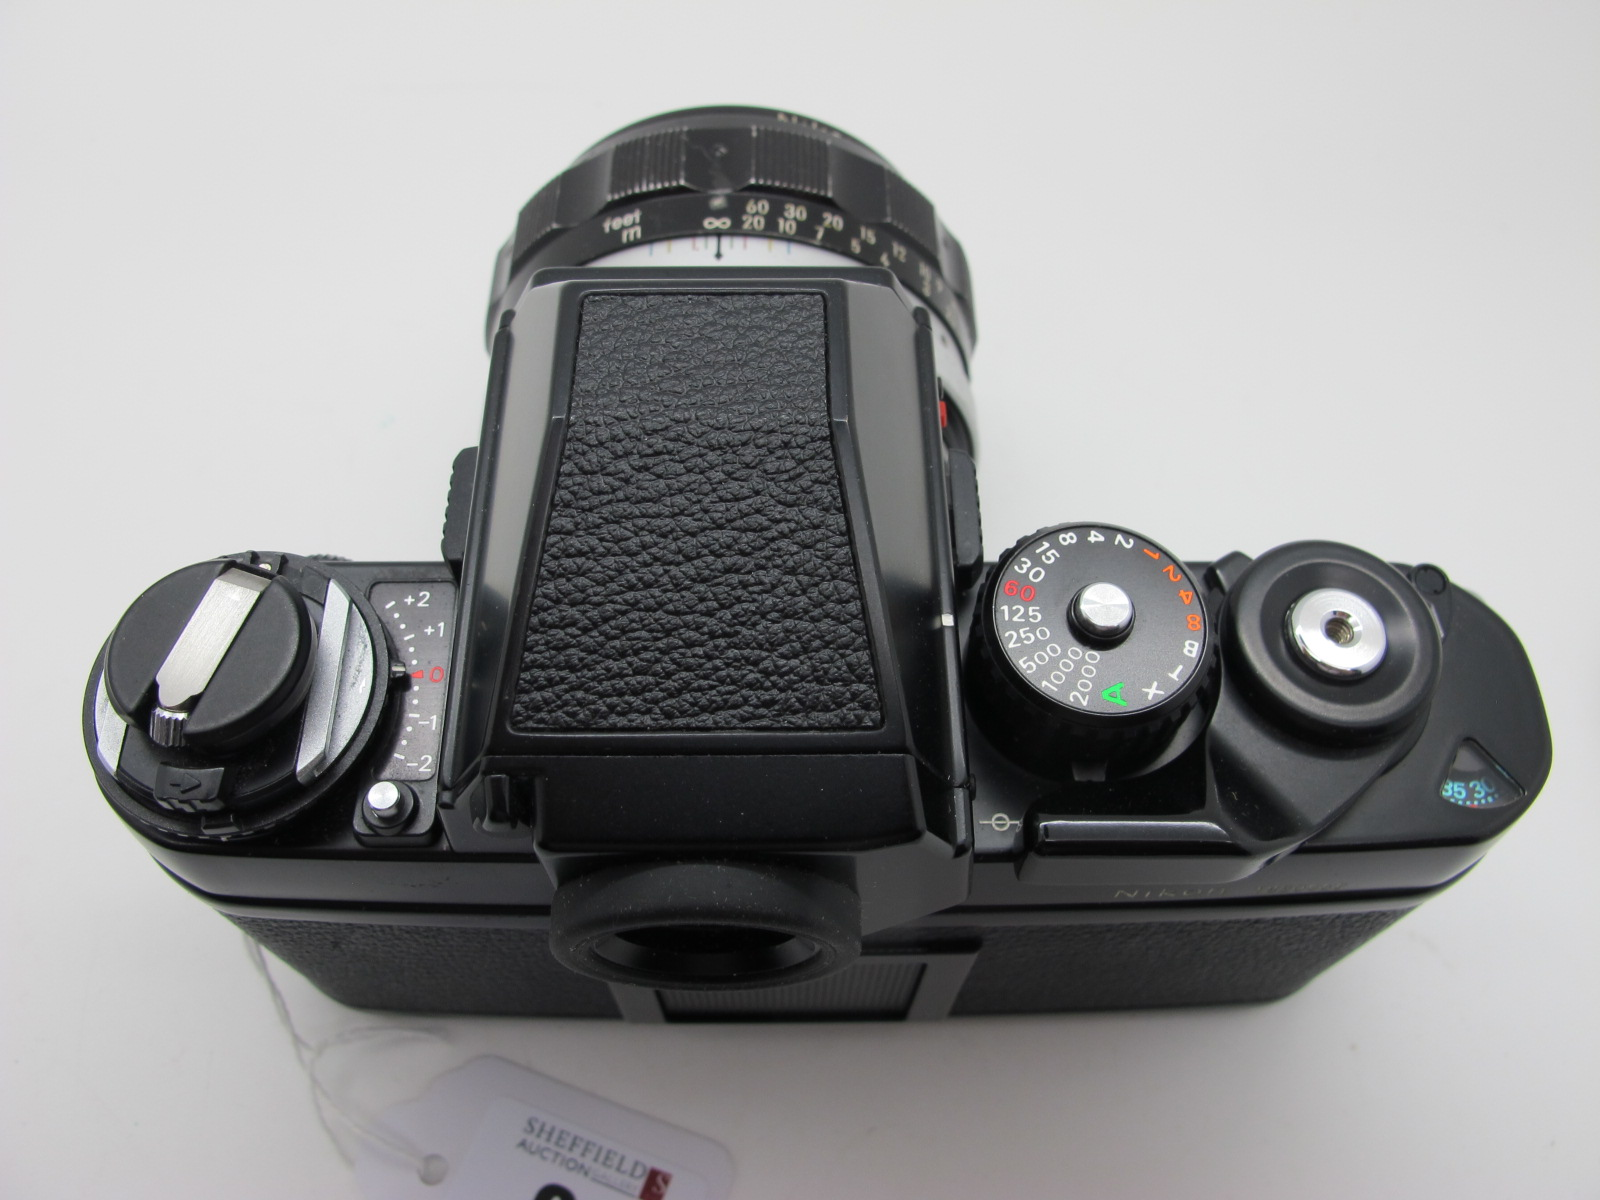 Nikon F3, with Nikkor-H Auto 1-18 f=85mm lens. - Image 8 of 9